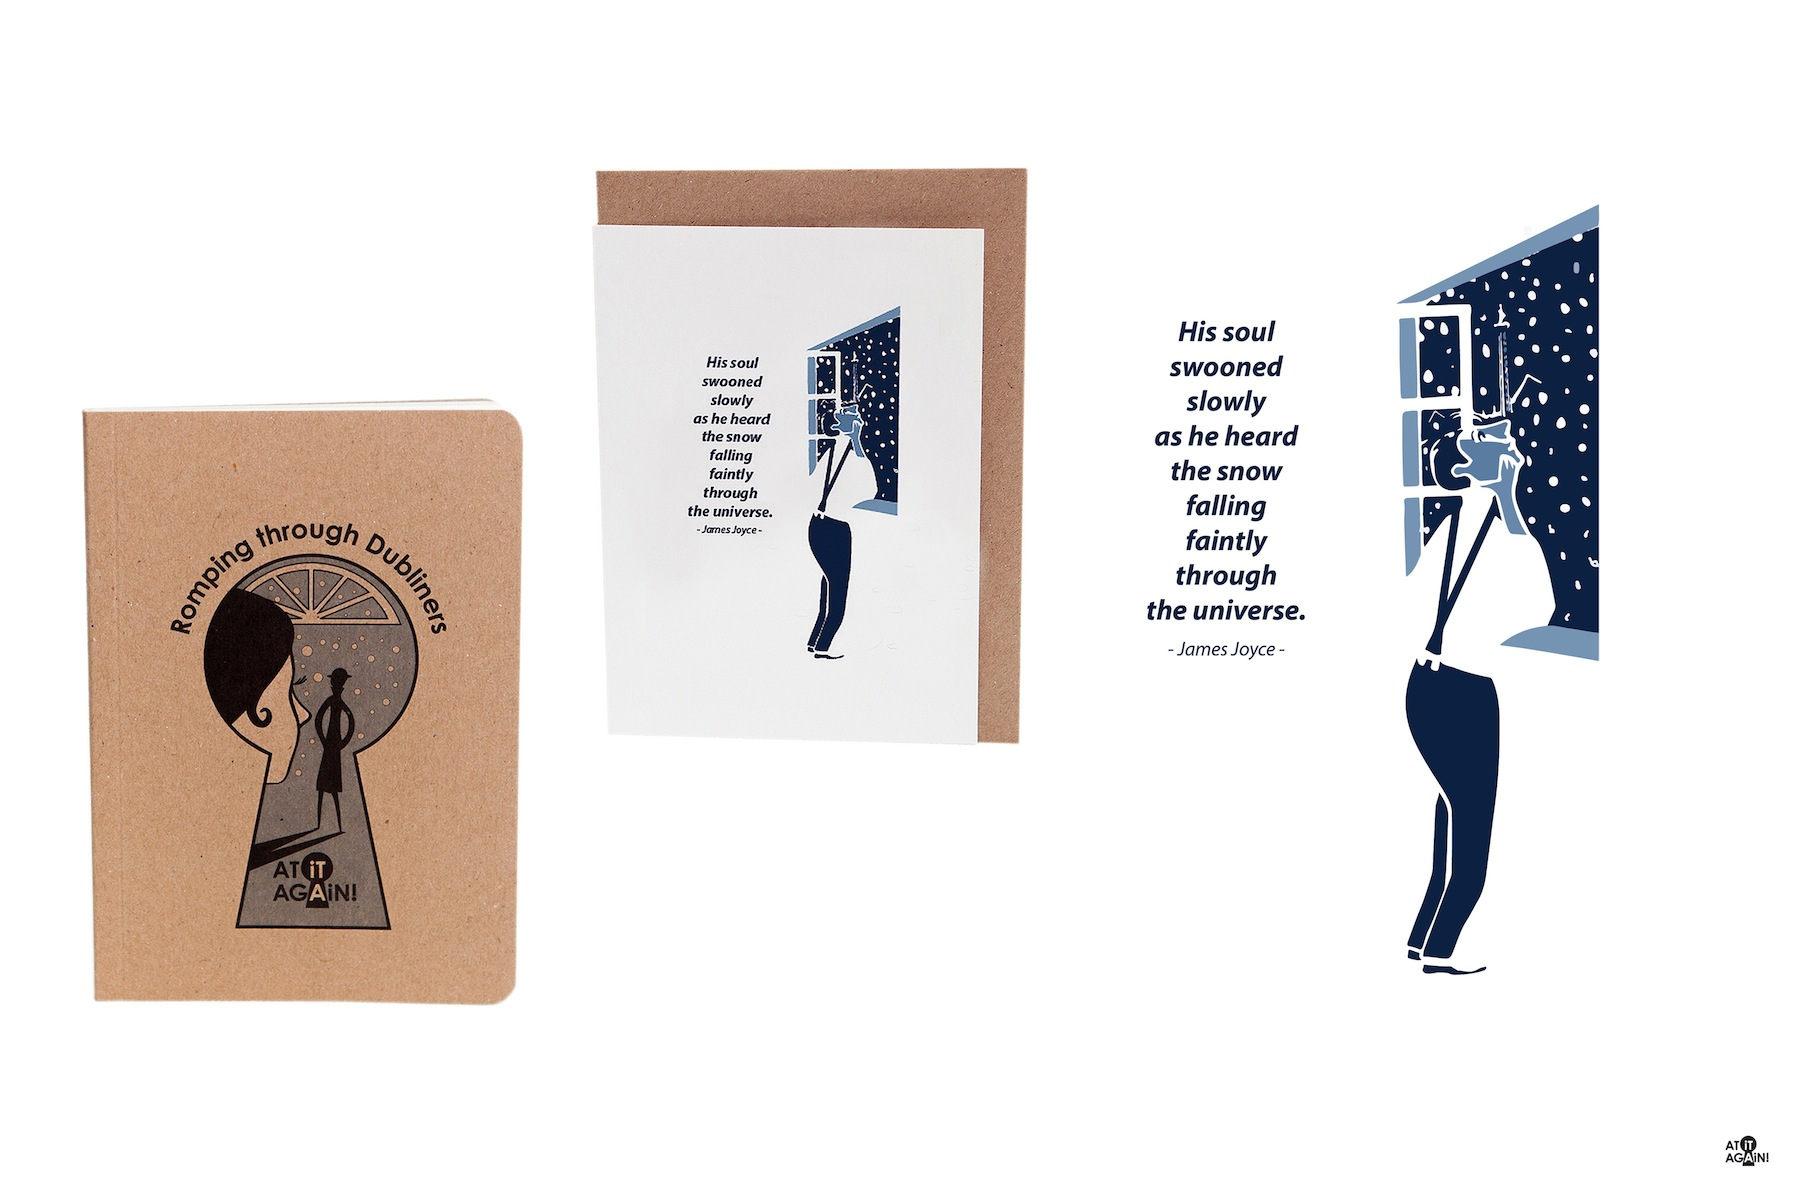 Literary Christmas Gifts and Cards by At it Again!